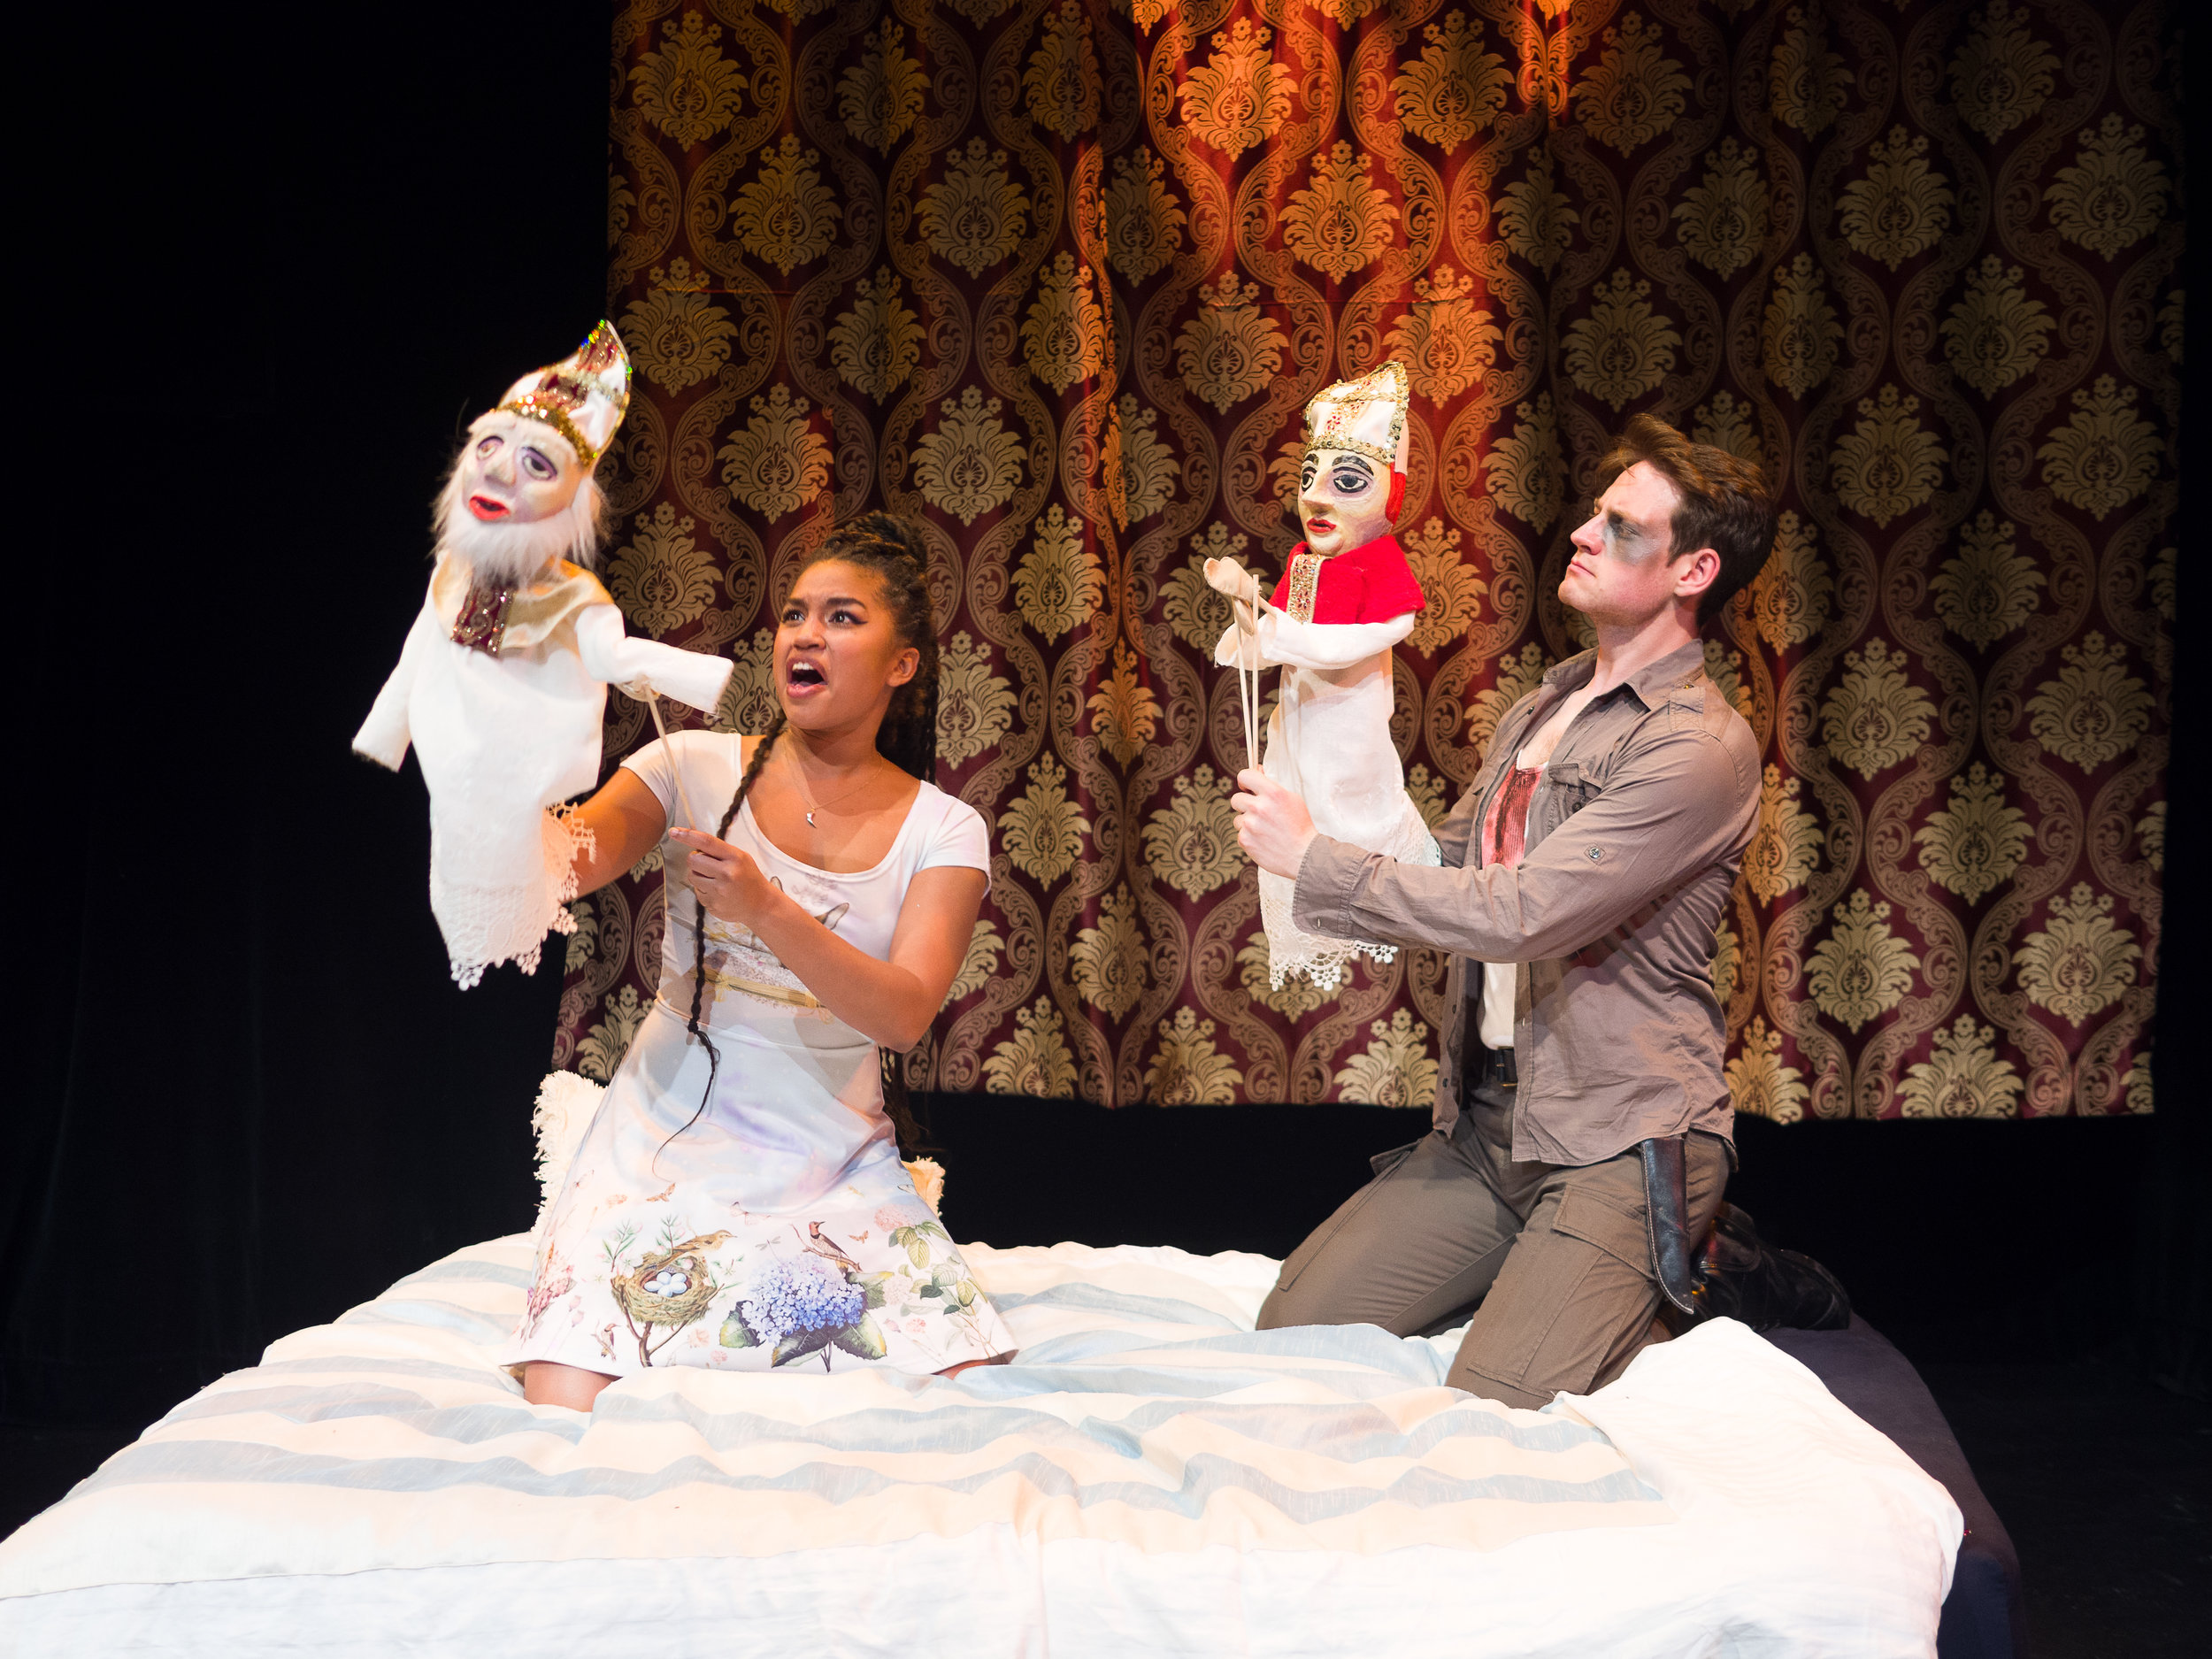 Left to Right: Dewey Stewart as Giovanni; Russell as Angela Di Ghilini. Set, costumes and puppets by Jan Venus; lighting design by Waleed Ansari. Photography by Rene Stakenborg.